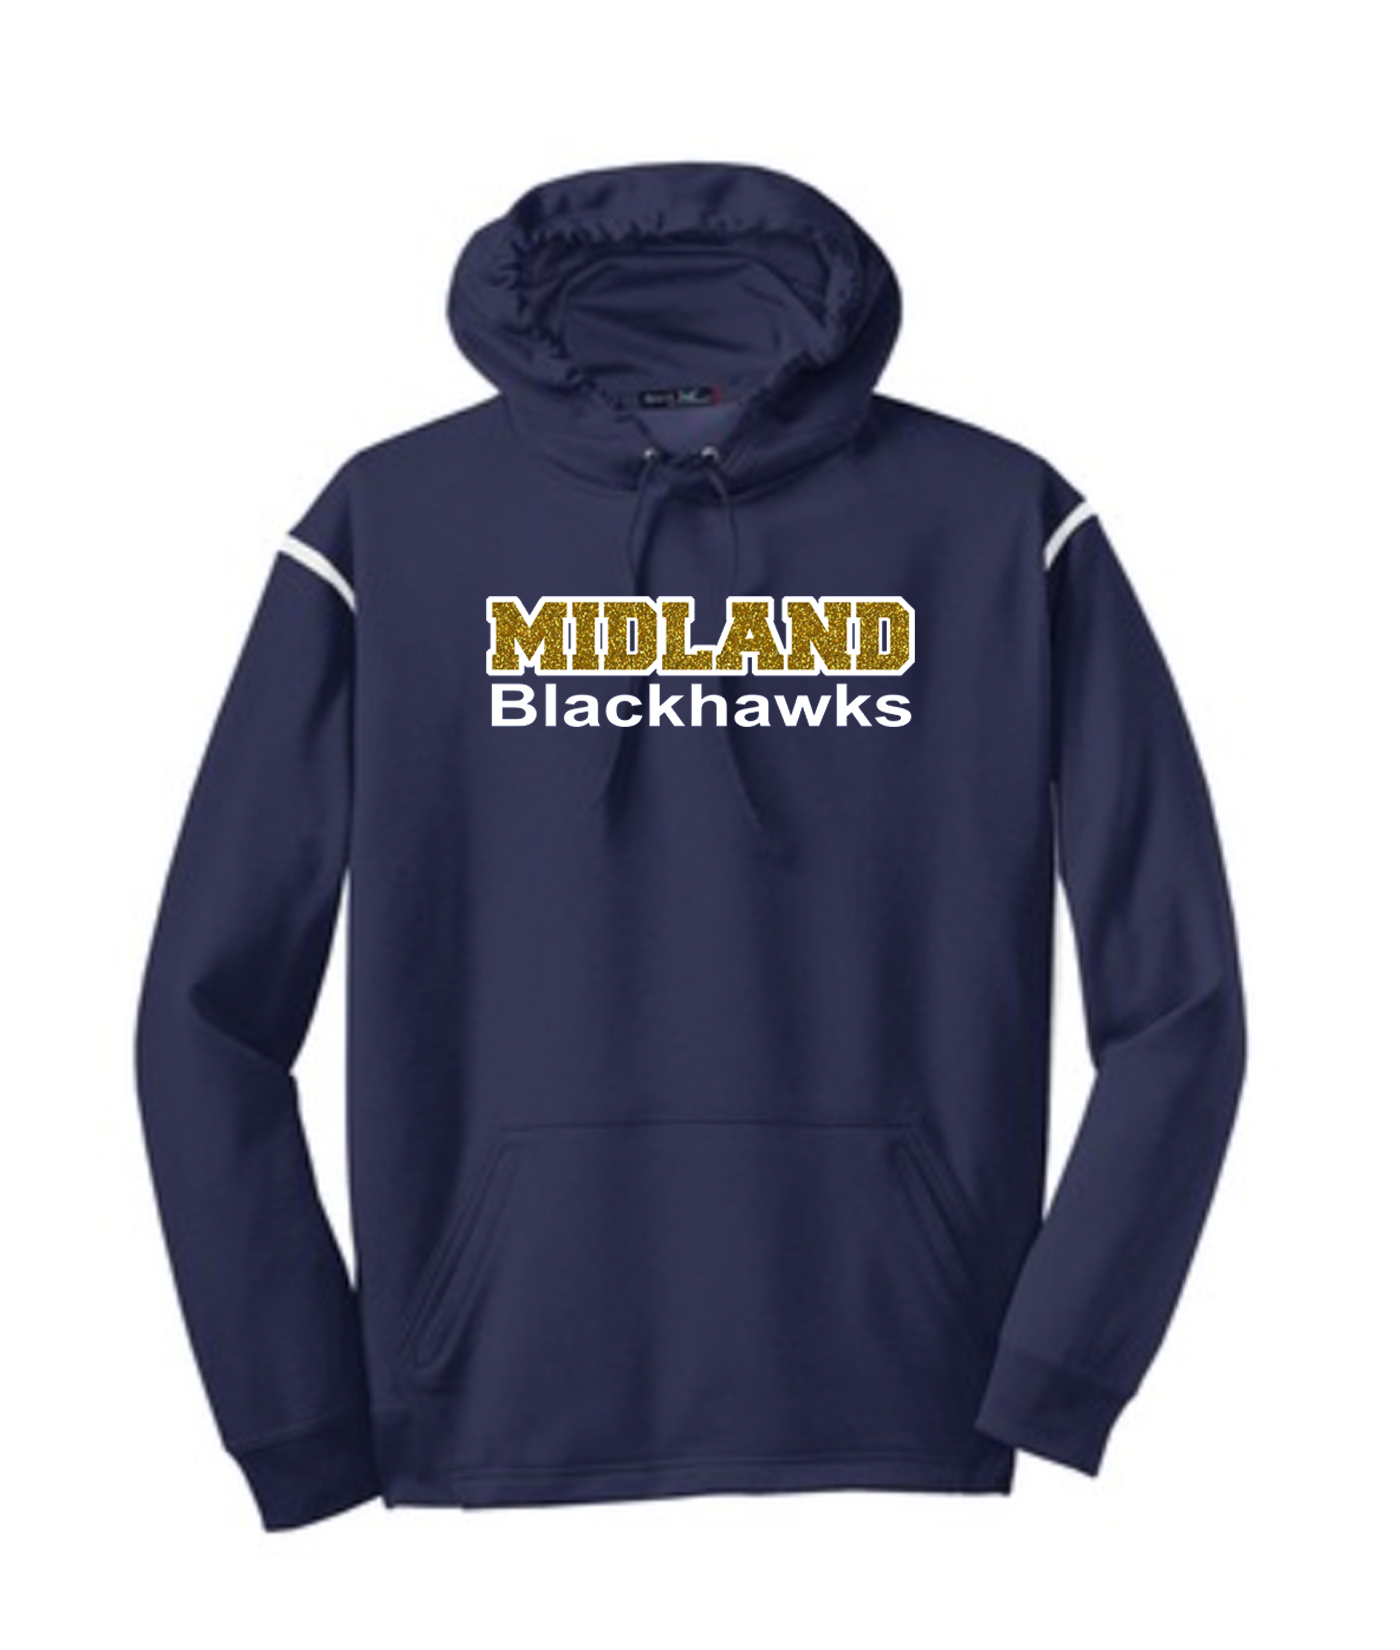 Sport-Tek Navy Tech Fleece Colorblock Hooded Sweatshirt Glitter Midland Blackhawks Gold Inside with White Outline